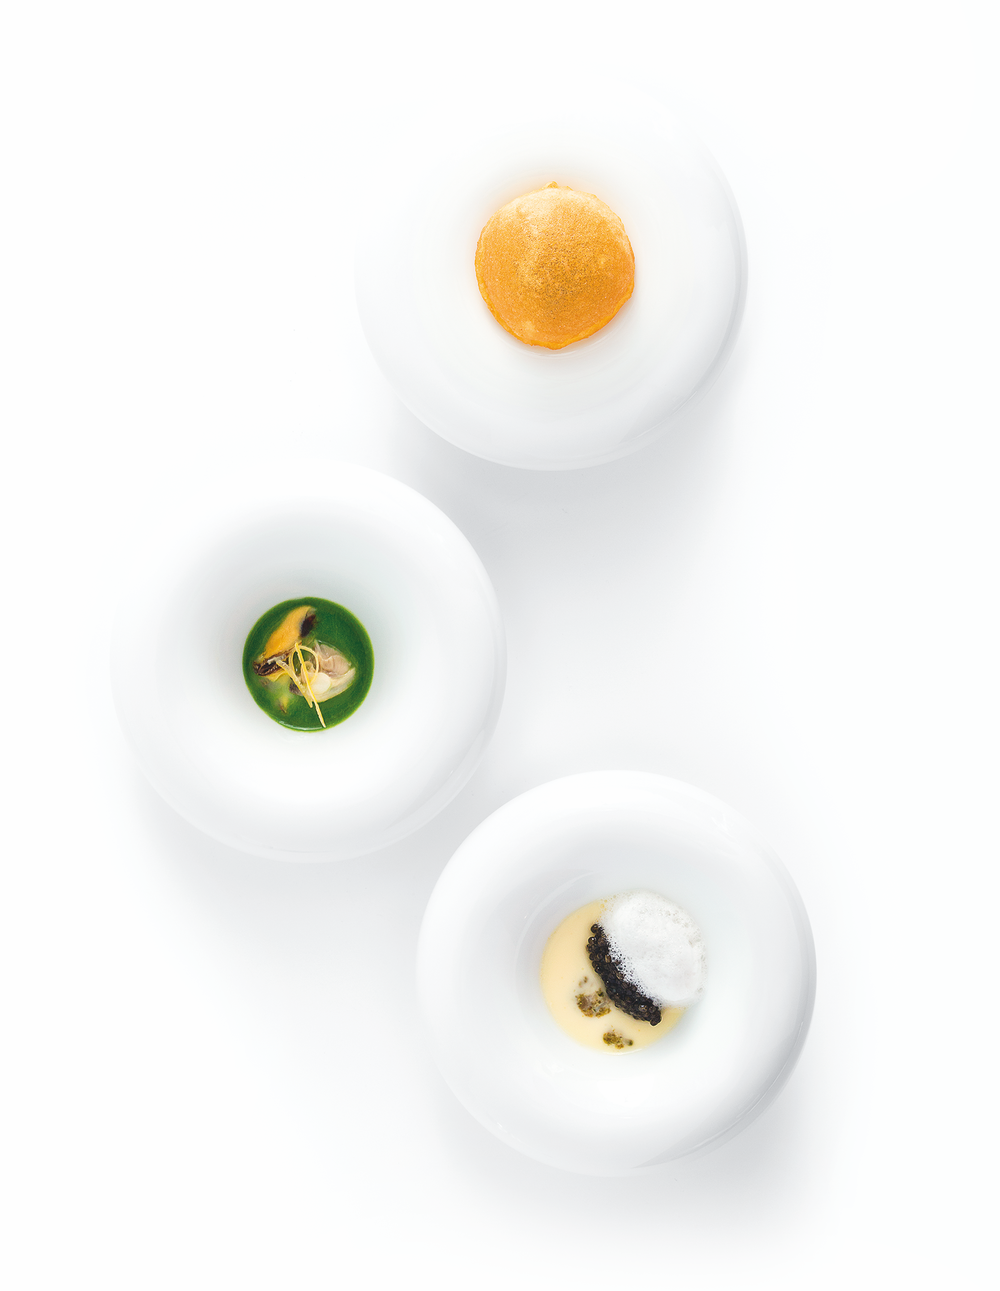 Les Anémones, a dish in three parts! An assortment of ocean flowers in creamy variations, fresh and crispy, inspired by the recipes from the wives, mothers, and grandmothers of Marseille's fishermen.